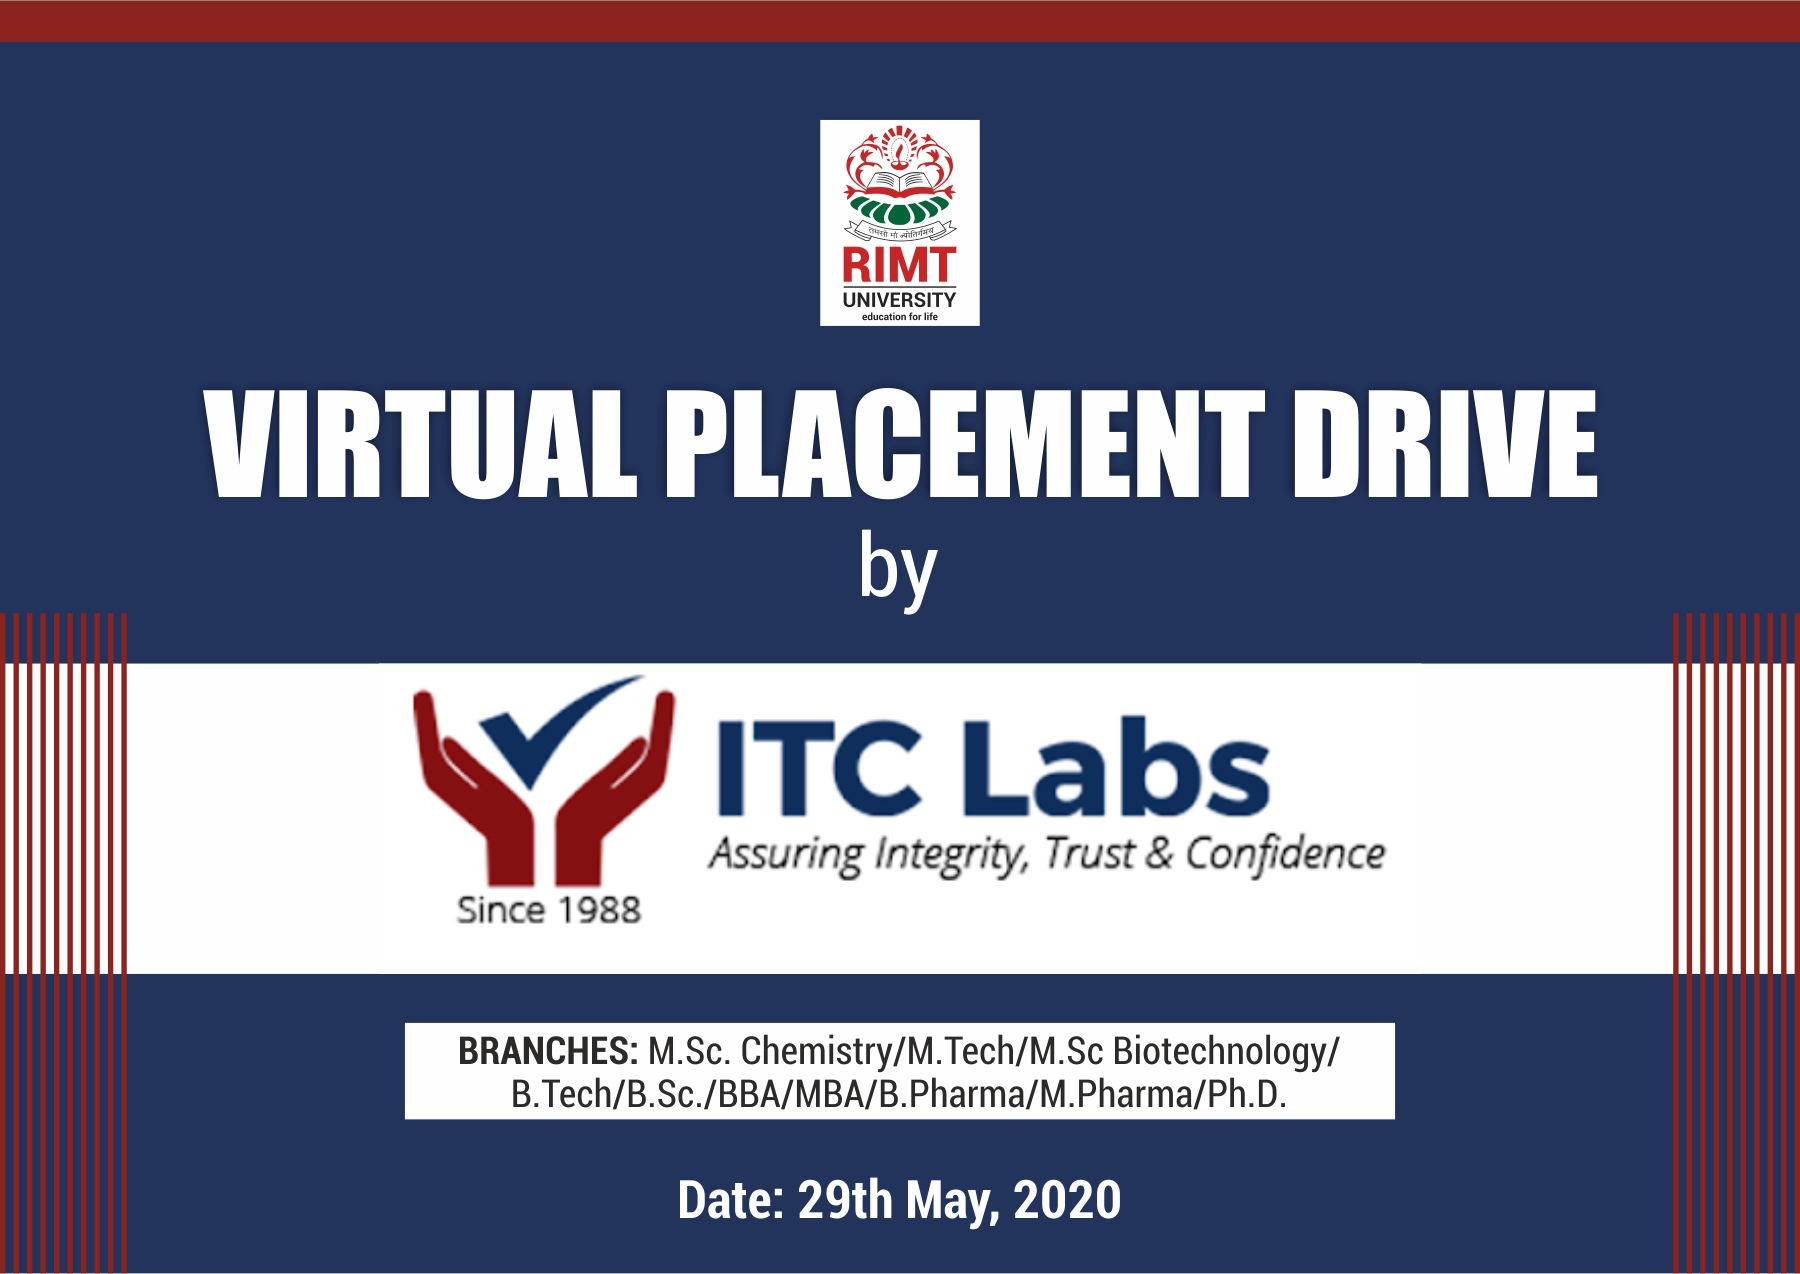 ITC Labs Placement Drive in RIMT University